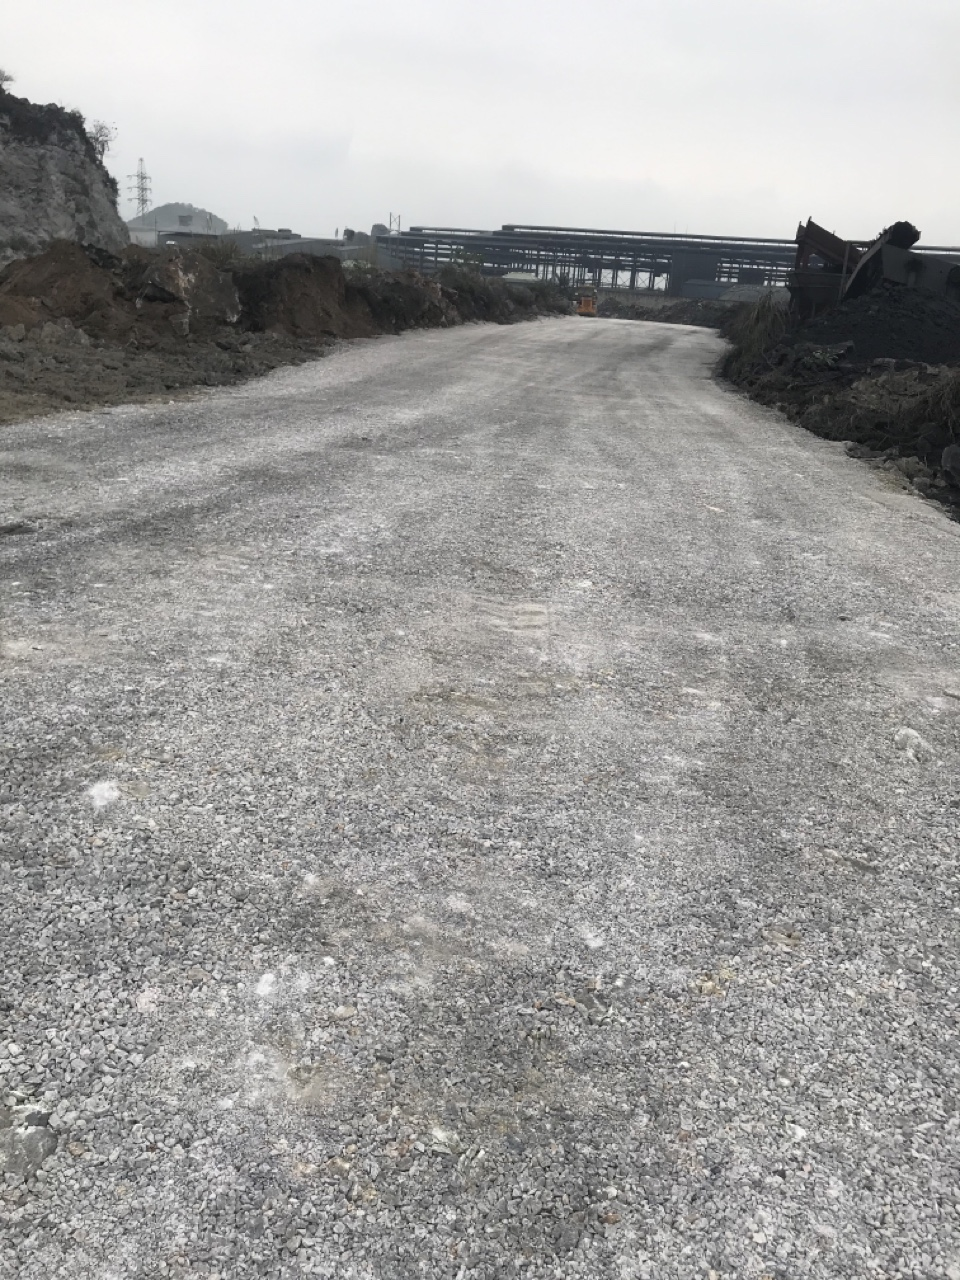 NHQ COMPLETED THE IMPROVEMENT OF THE ROAD ACROSS THE COMPANY